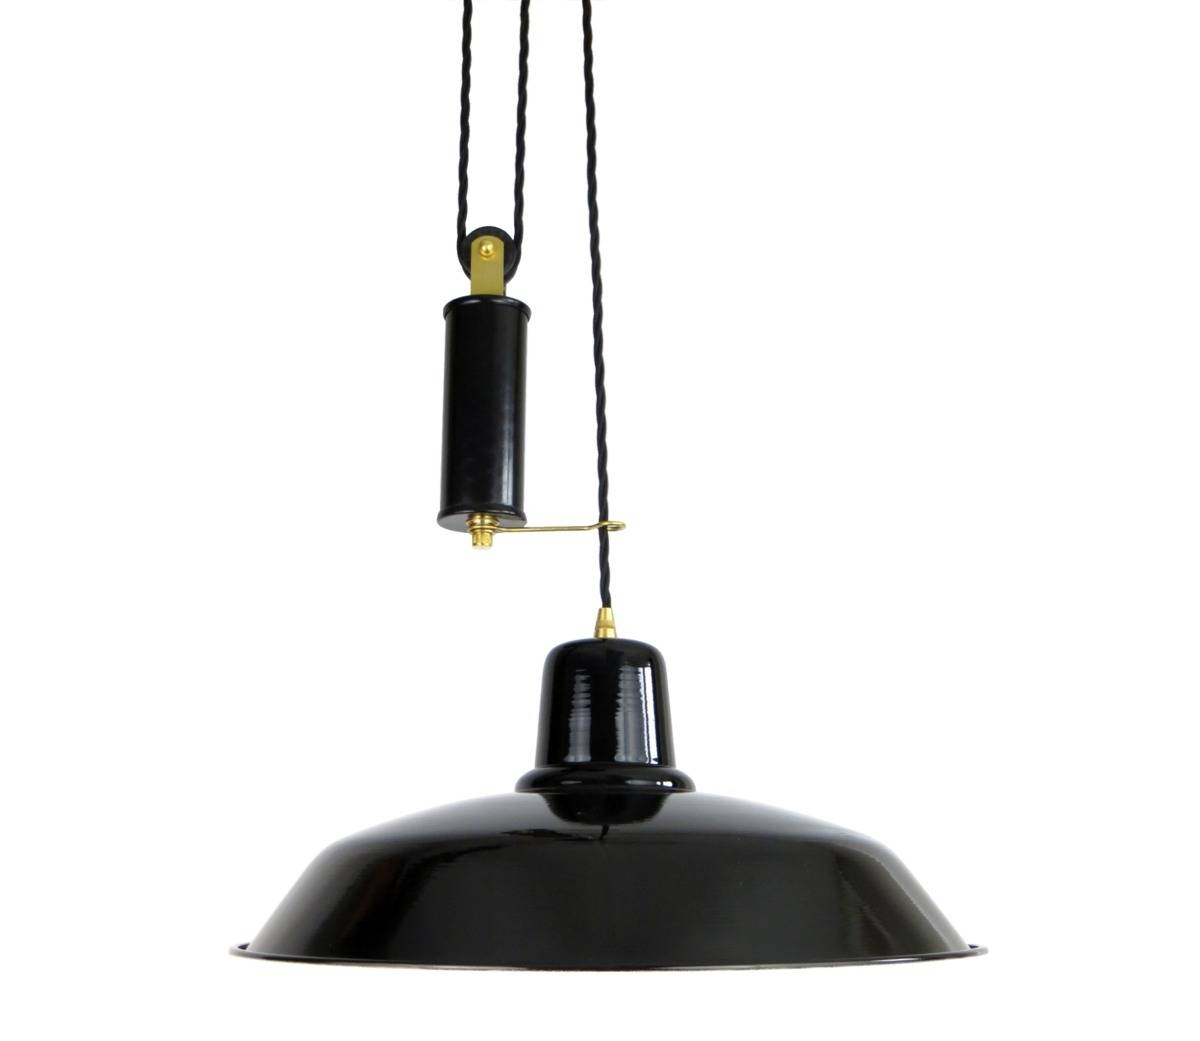 Old School Rise & Fall Light - The French House intended for Rise and Fall Pendants (Image 10 of 15)